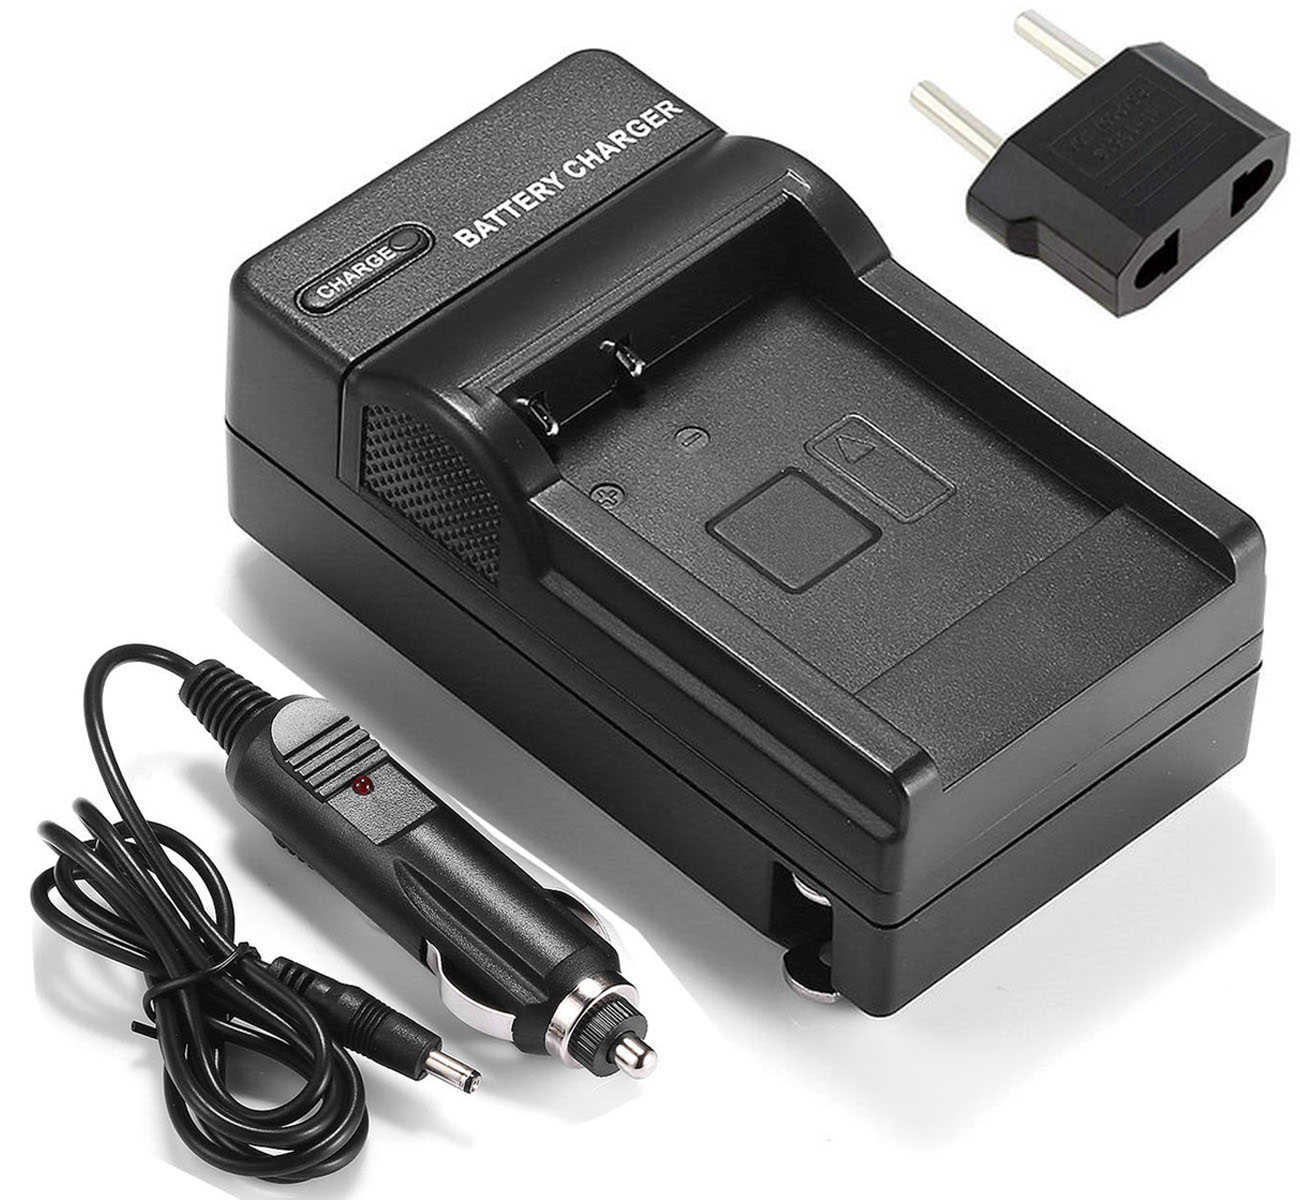 VP-L907 Digital Video Camcorder Battery 2 Pack and LCD USB Travel Charger for Samsung VP-L900 VP-L906